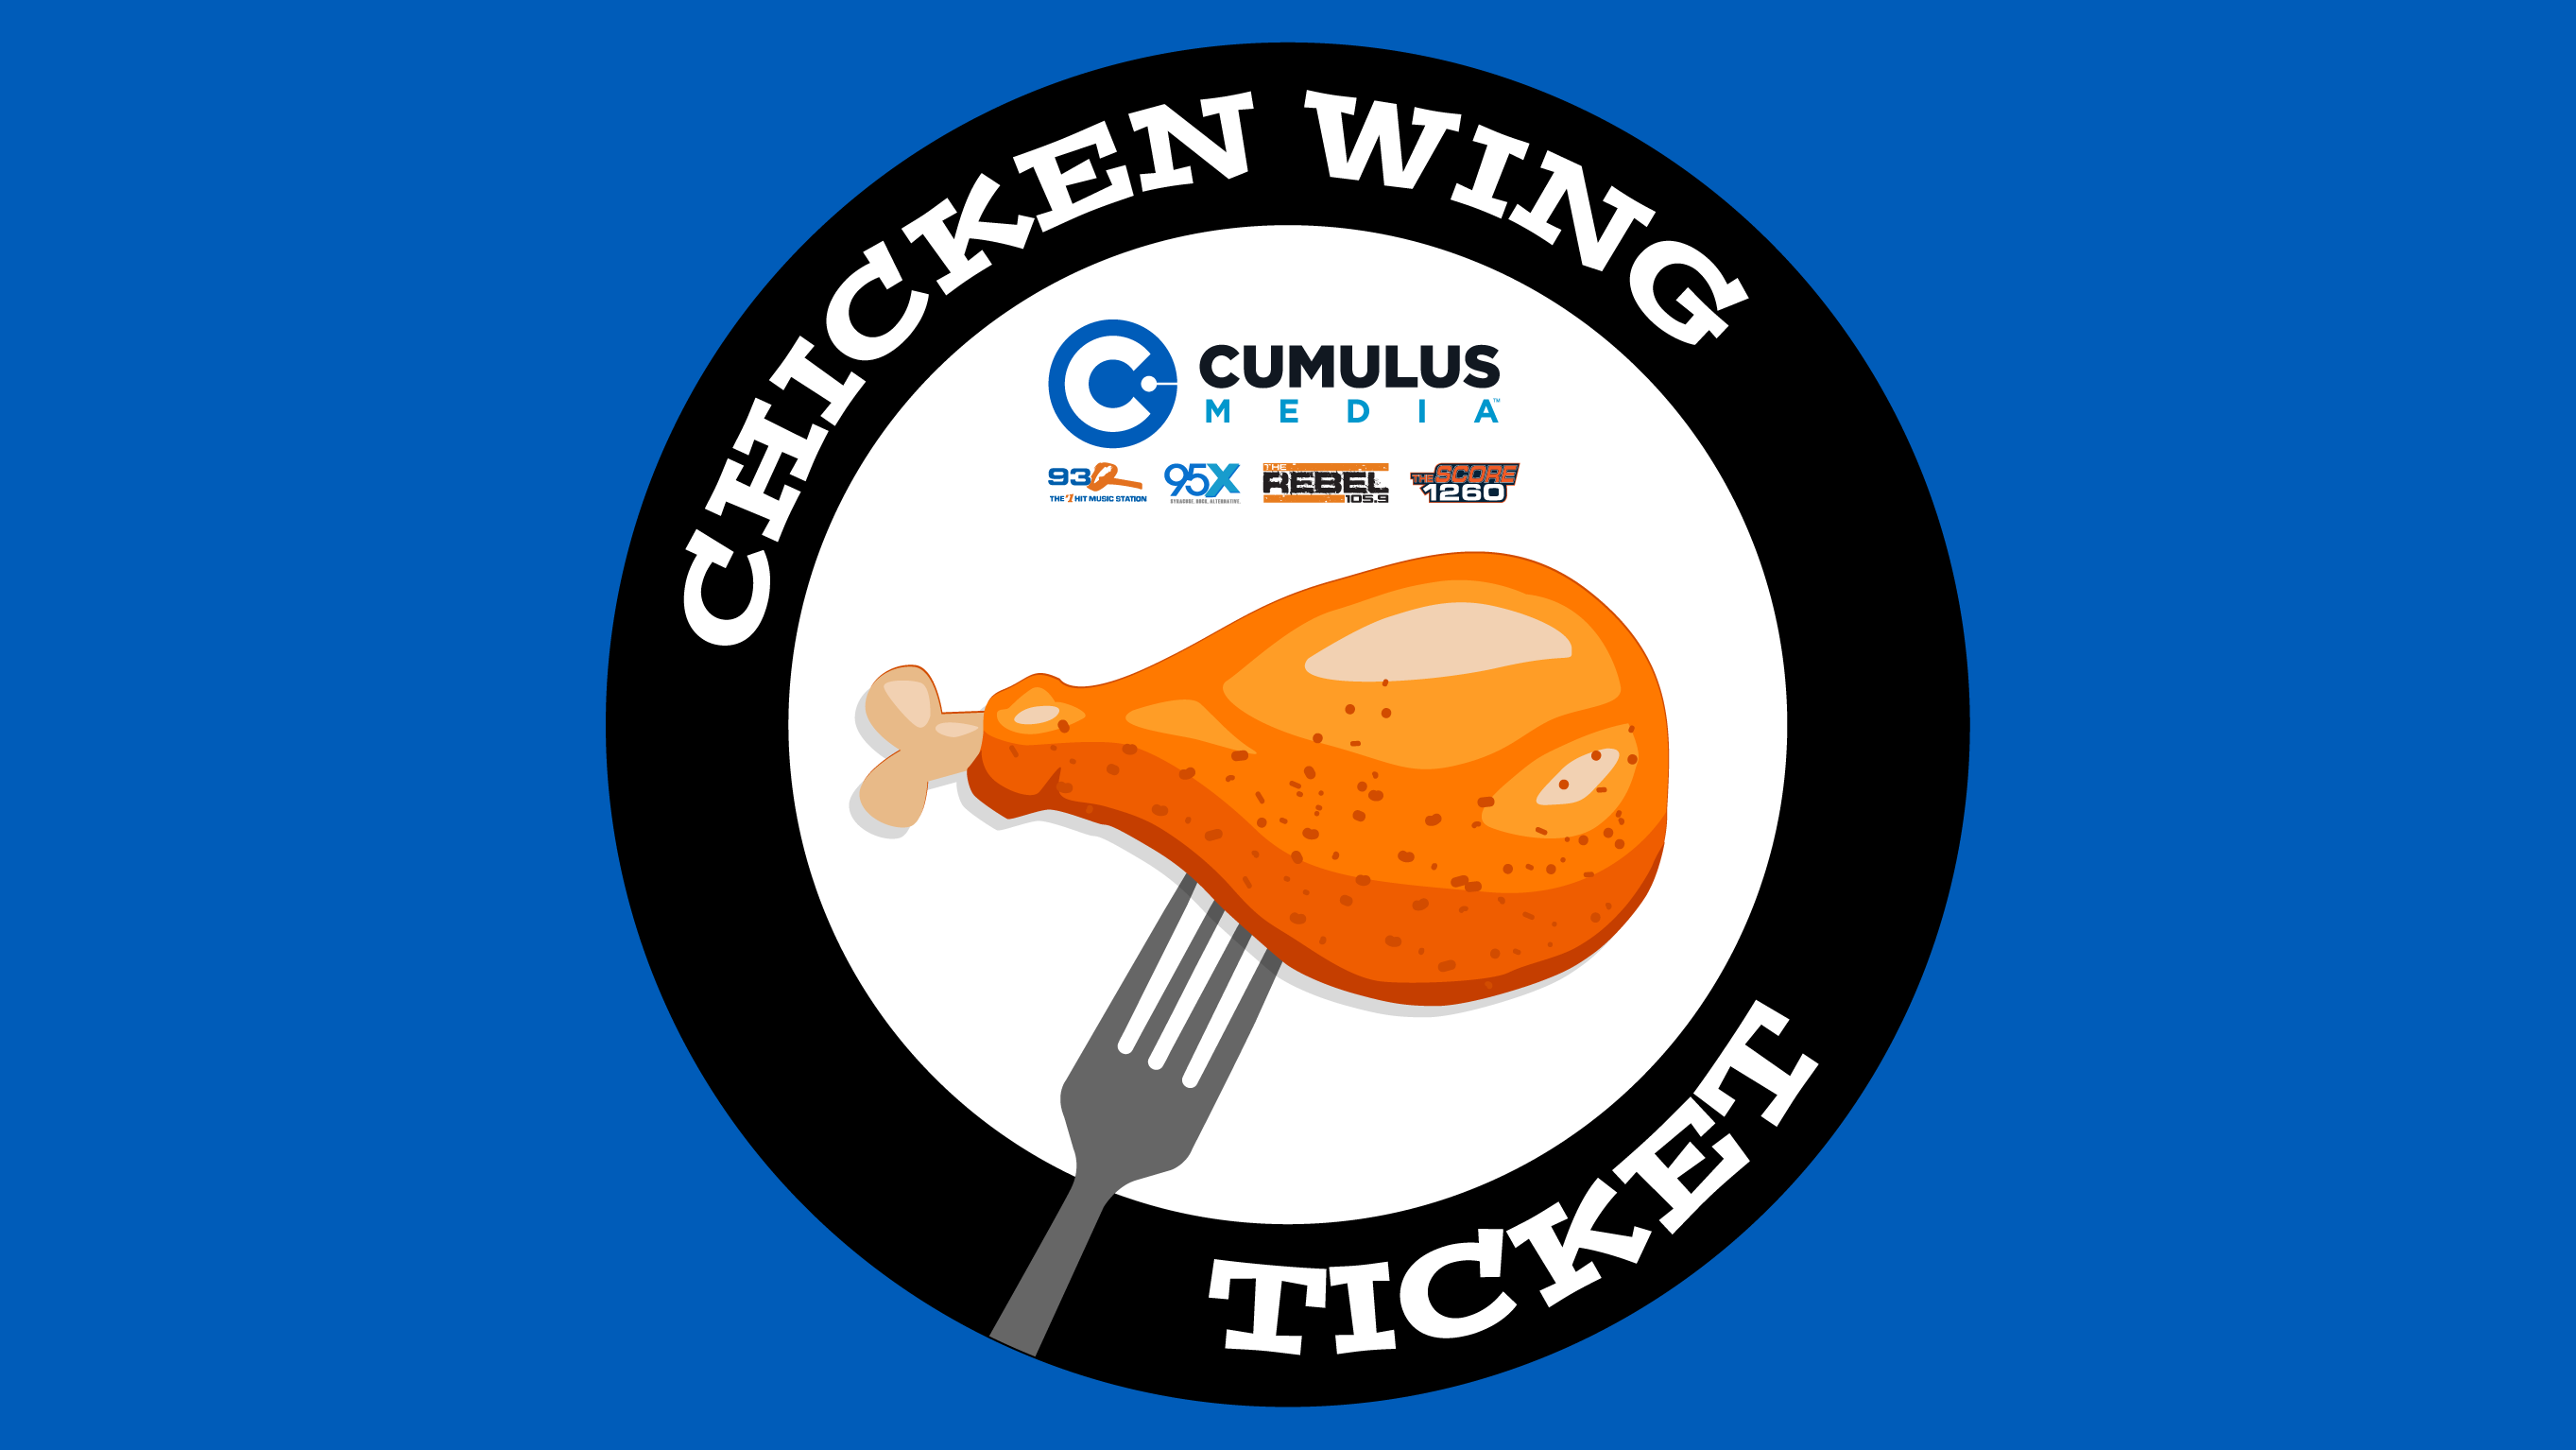 Cumulus Chicken Wing Ticket